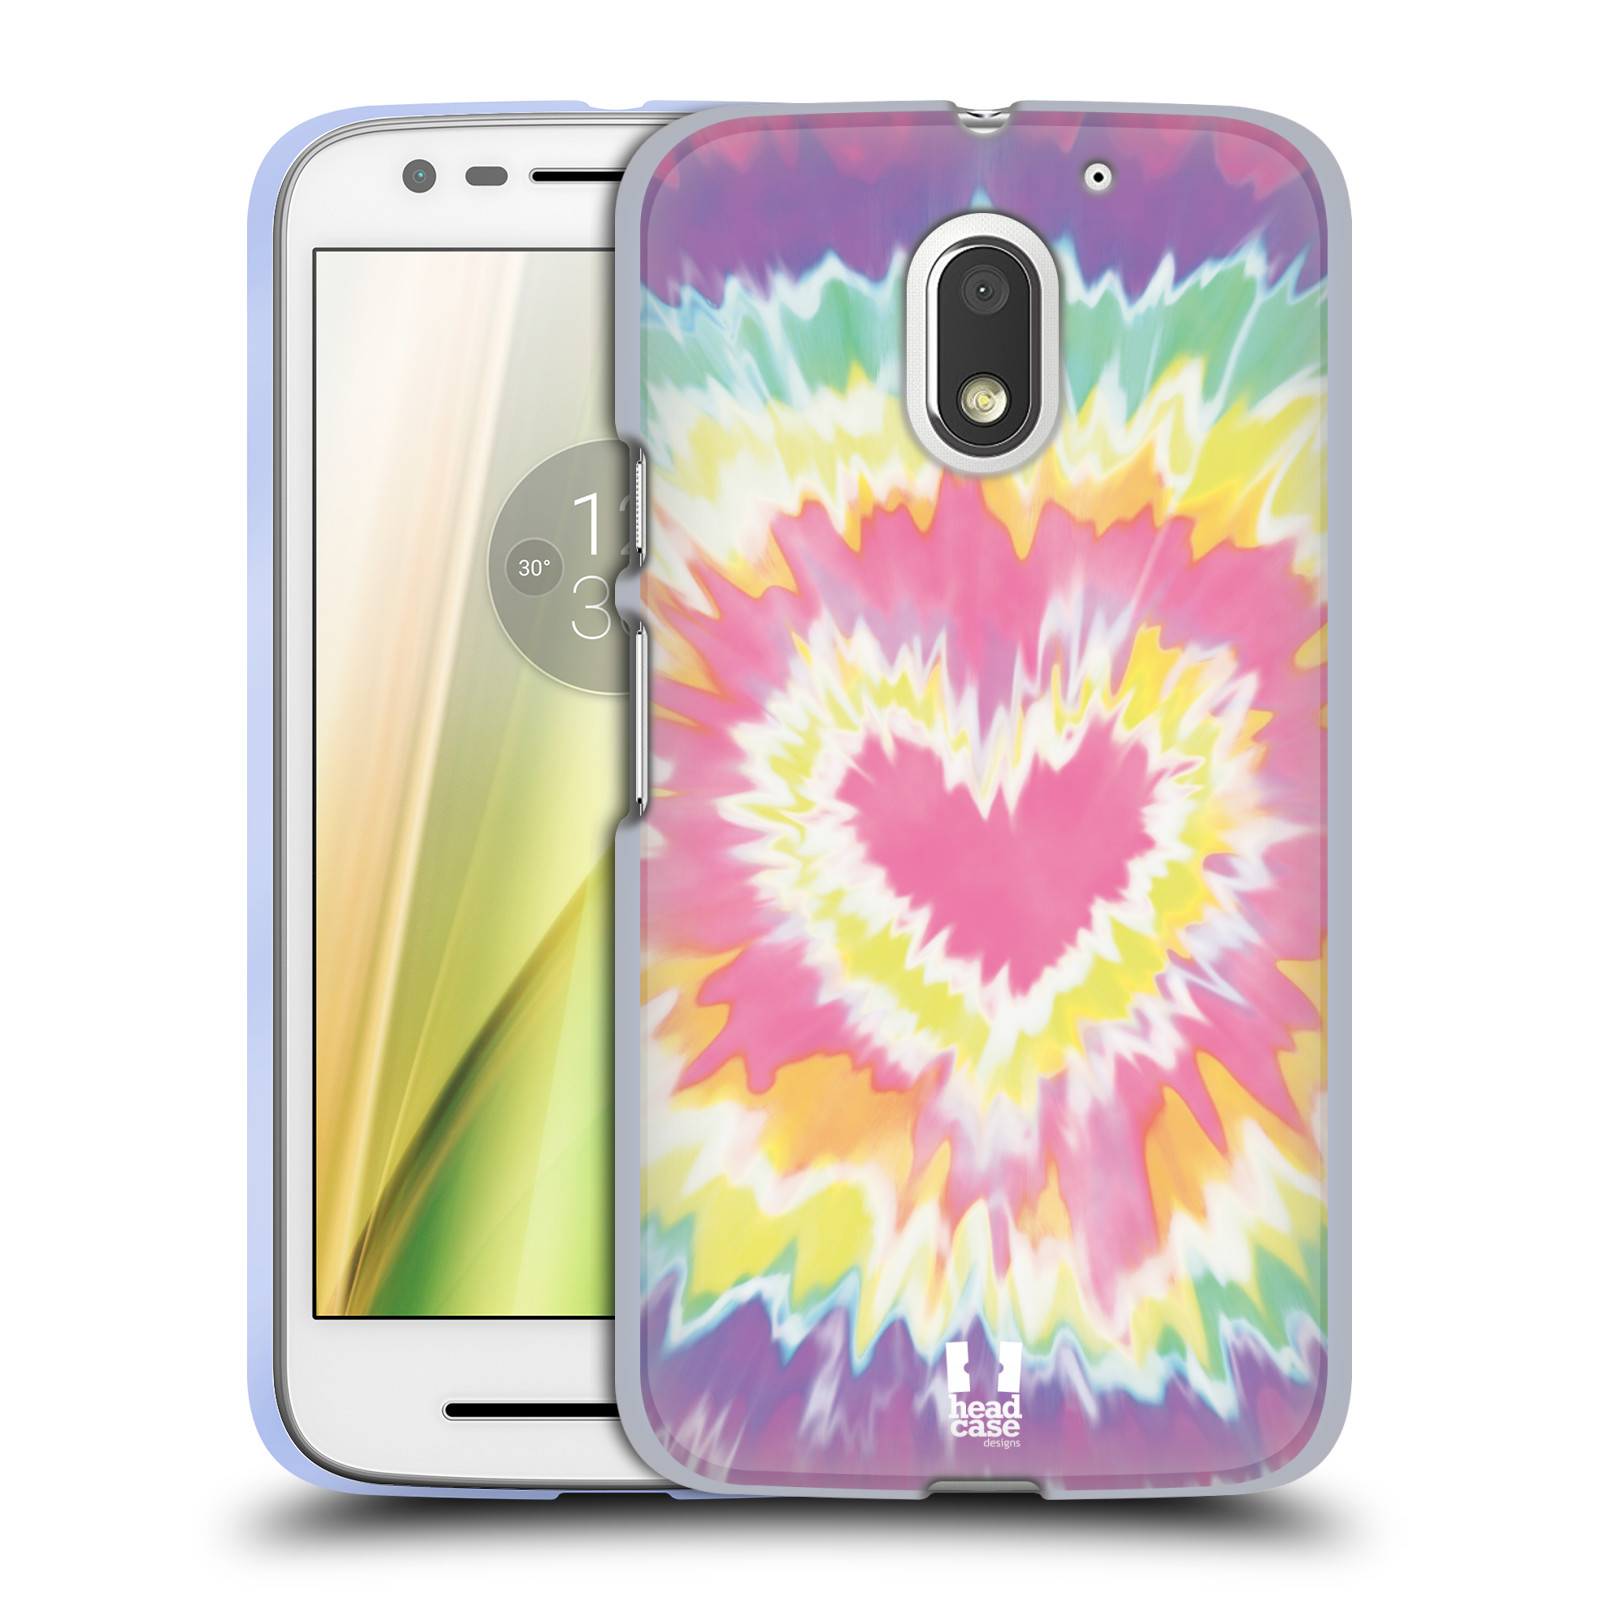 HEAD-CASE-AMOUR-PSYCHEDELIQUE-ETUI-COQUE-EN-GEL-POUR-MOTOROLA-MOTO-E3-POWER